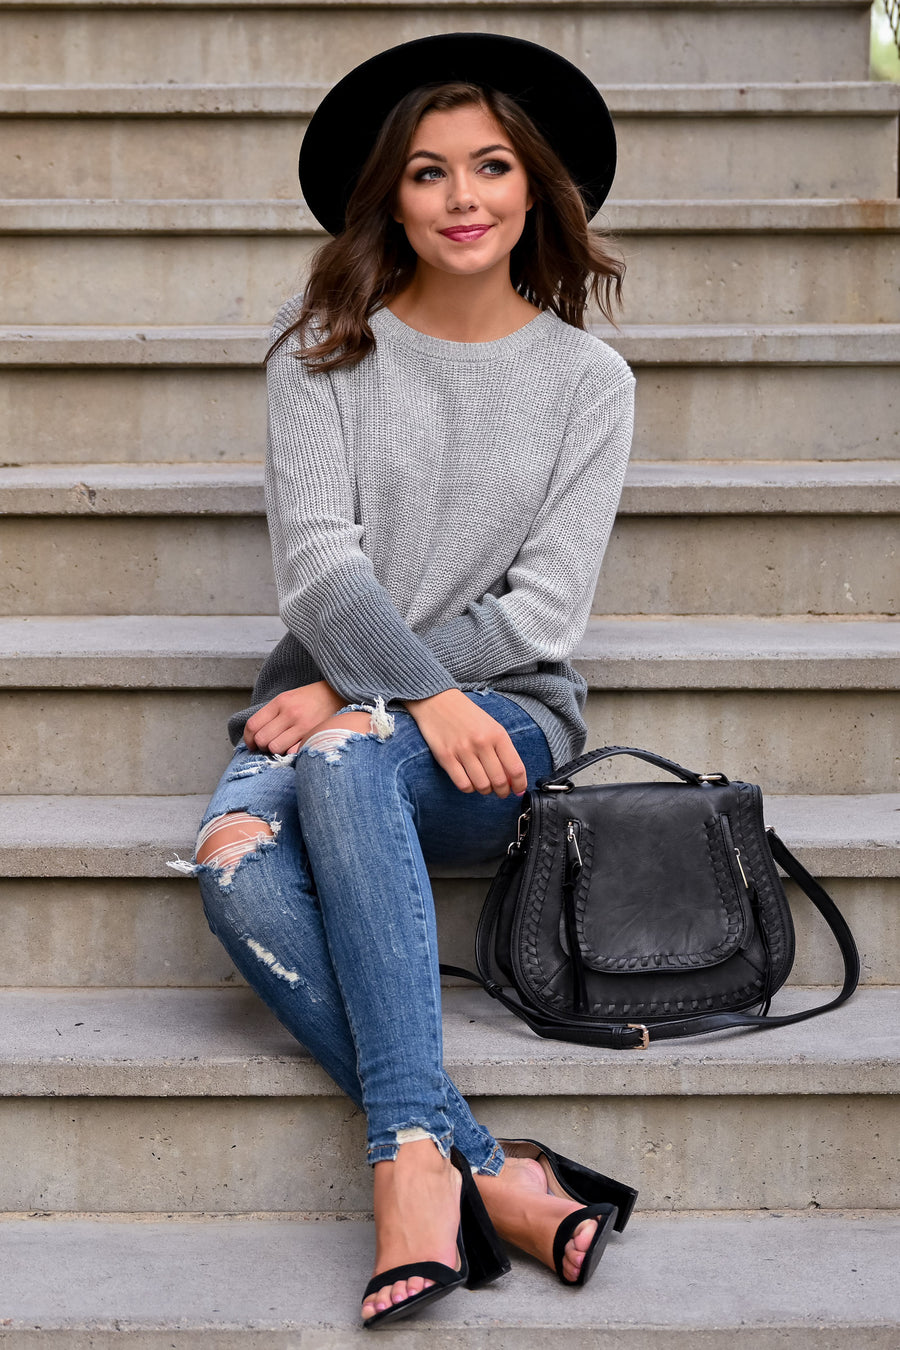 Next Chapter Please Sweater - Grey womens casual dip dye ribbed knit long sleeve sweater closet candy front